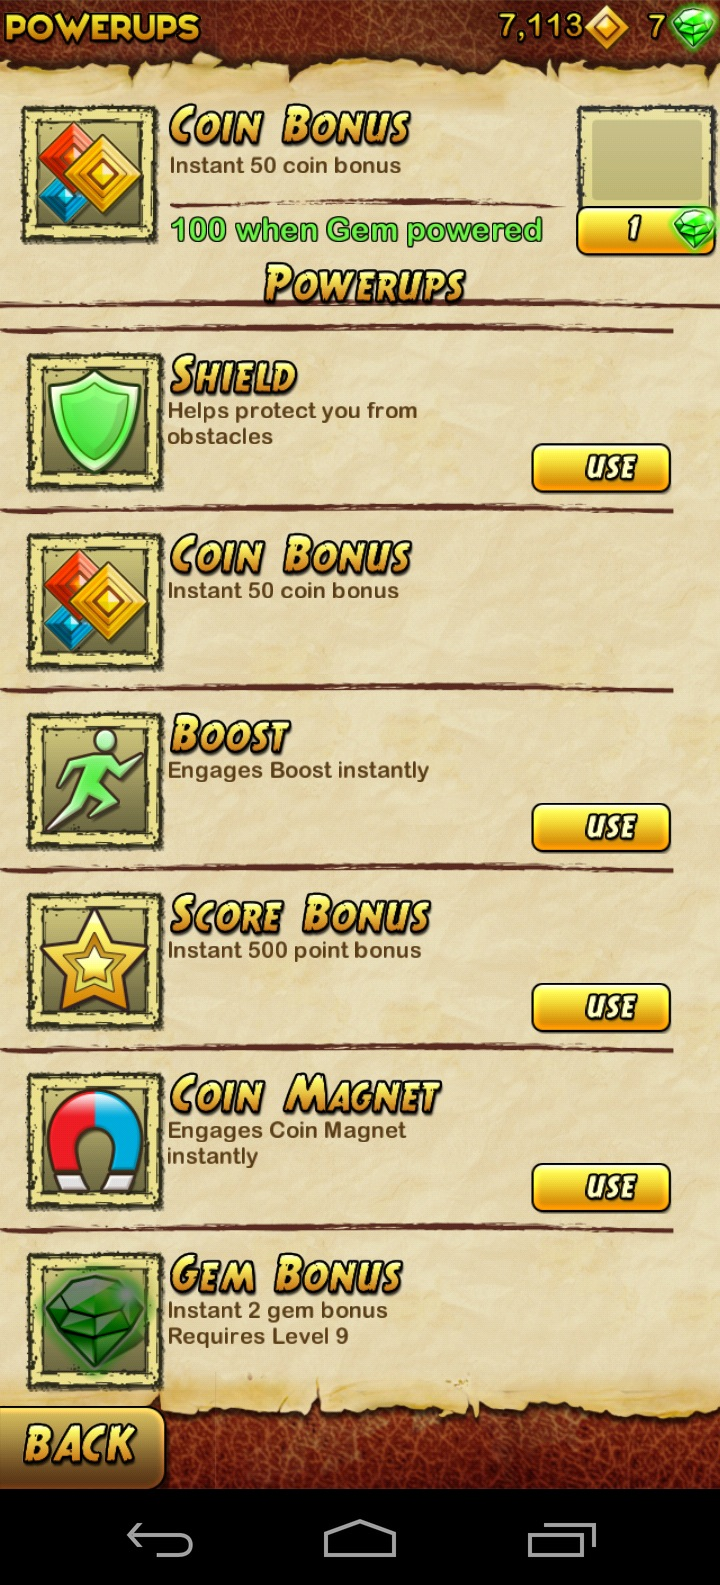 Lifebar bonuses in Temple Run 2